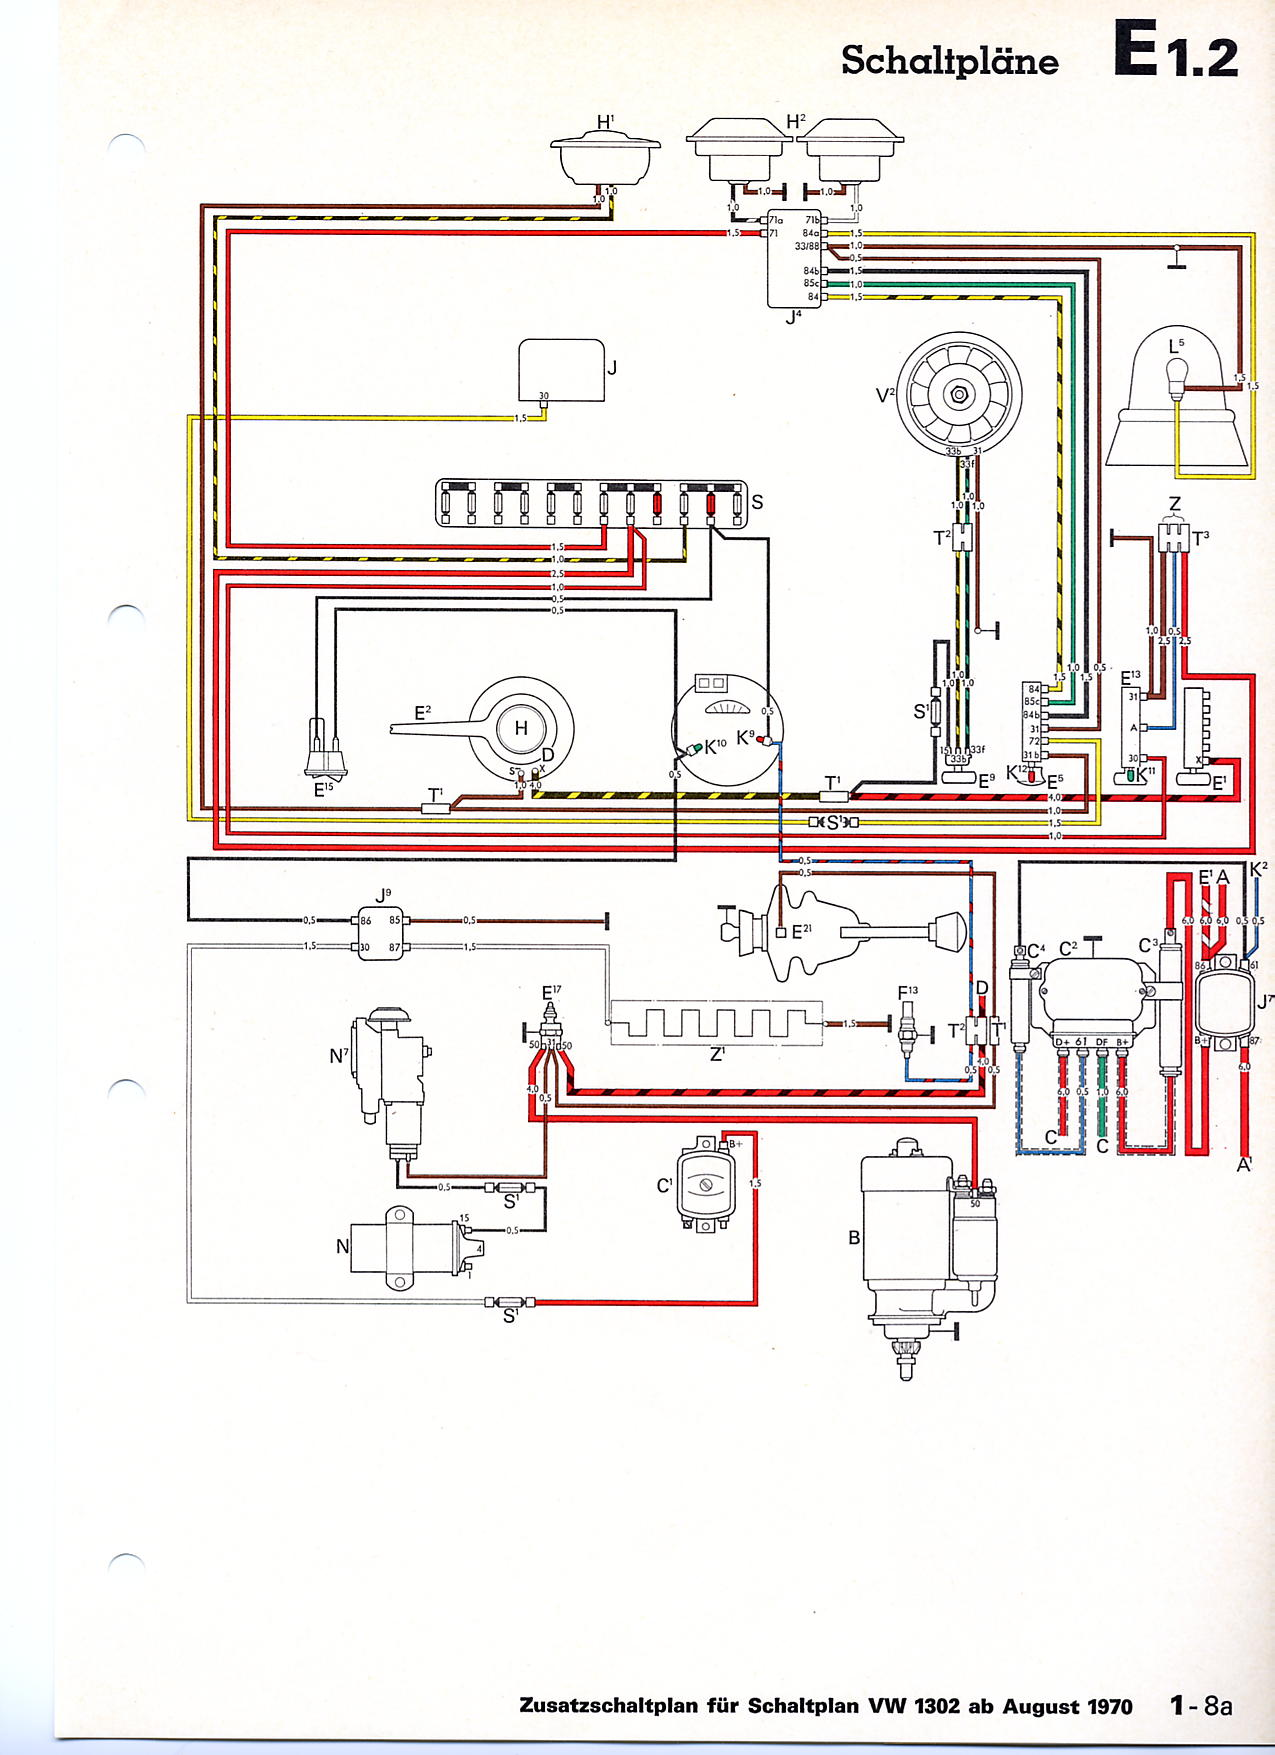 [DIAGRAM_5UK]  KS_9083] Wiring Additionally Vw Super Beetle Wiring Diagram Also Starter  Relay Free Diagram | Vw Beetle Starter Wiring Diagram |  | Chim Sheox Mohammedshrine Librar Wiring 101